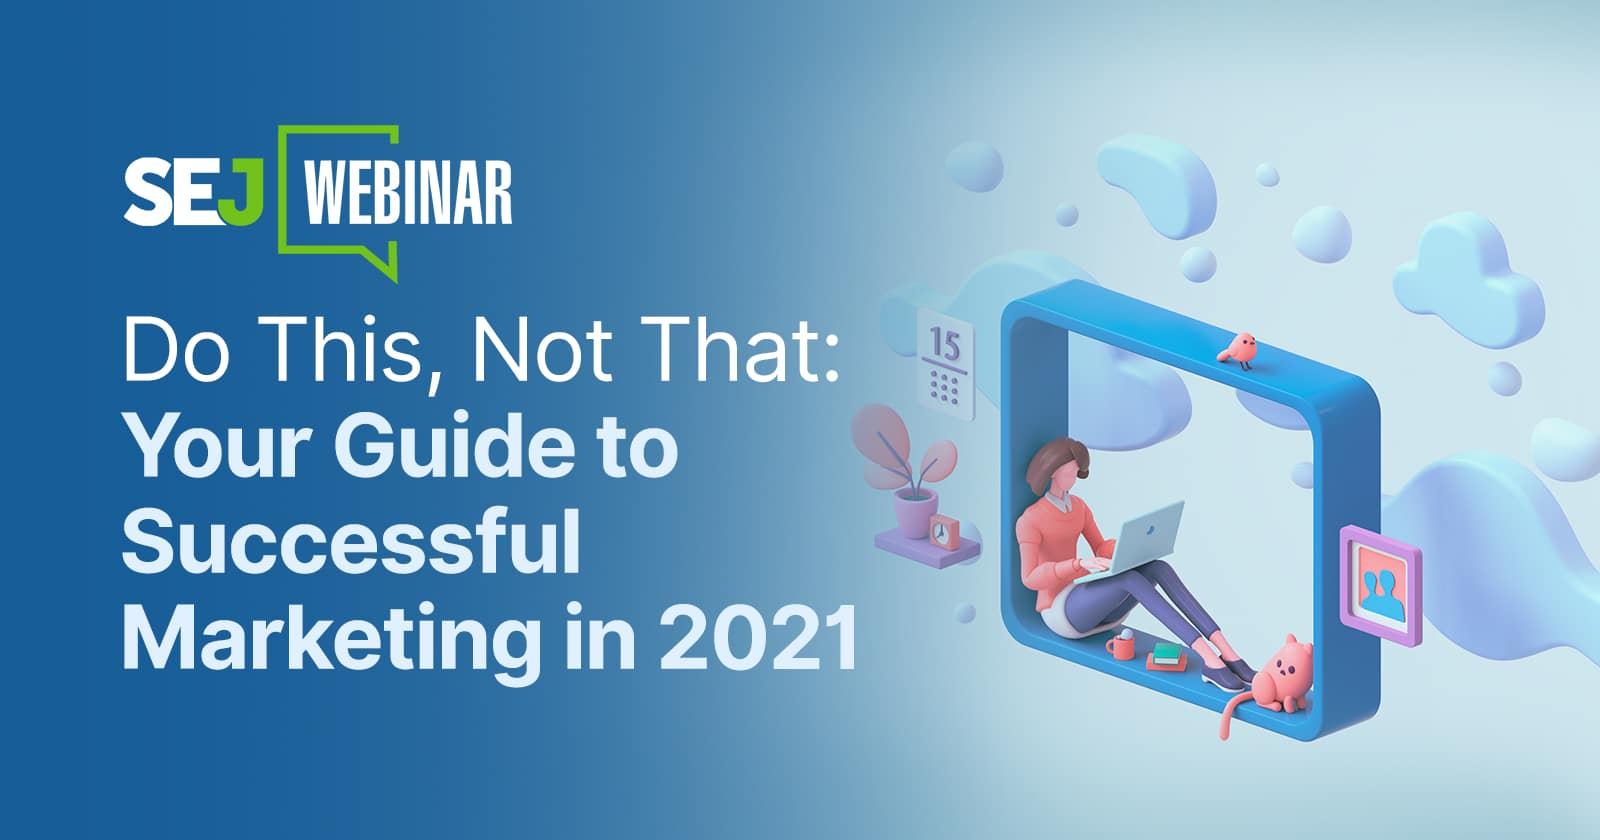 Do This, Not That: Your Guide to Successful Marketing in 2021 [Webinar] via @sejournal, @hethr_campbell